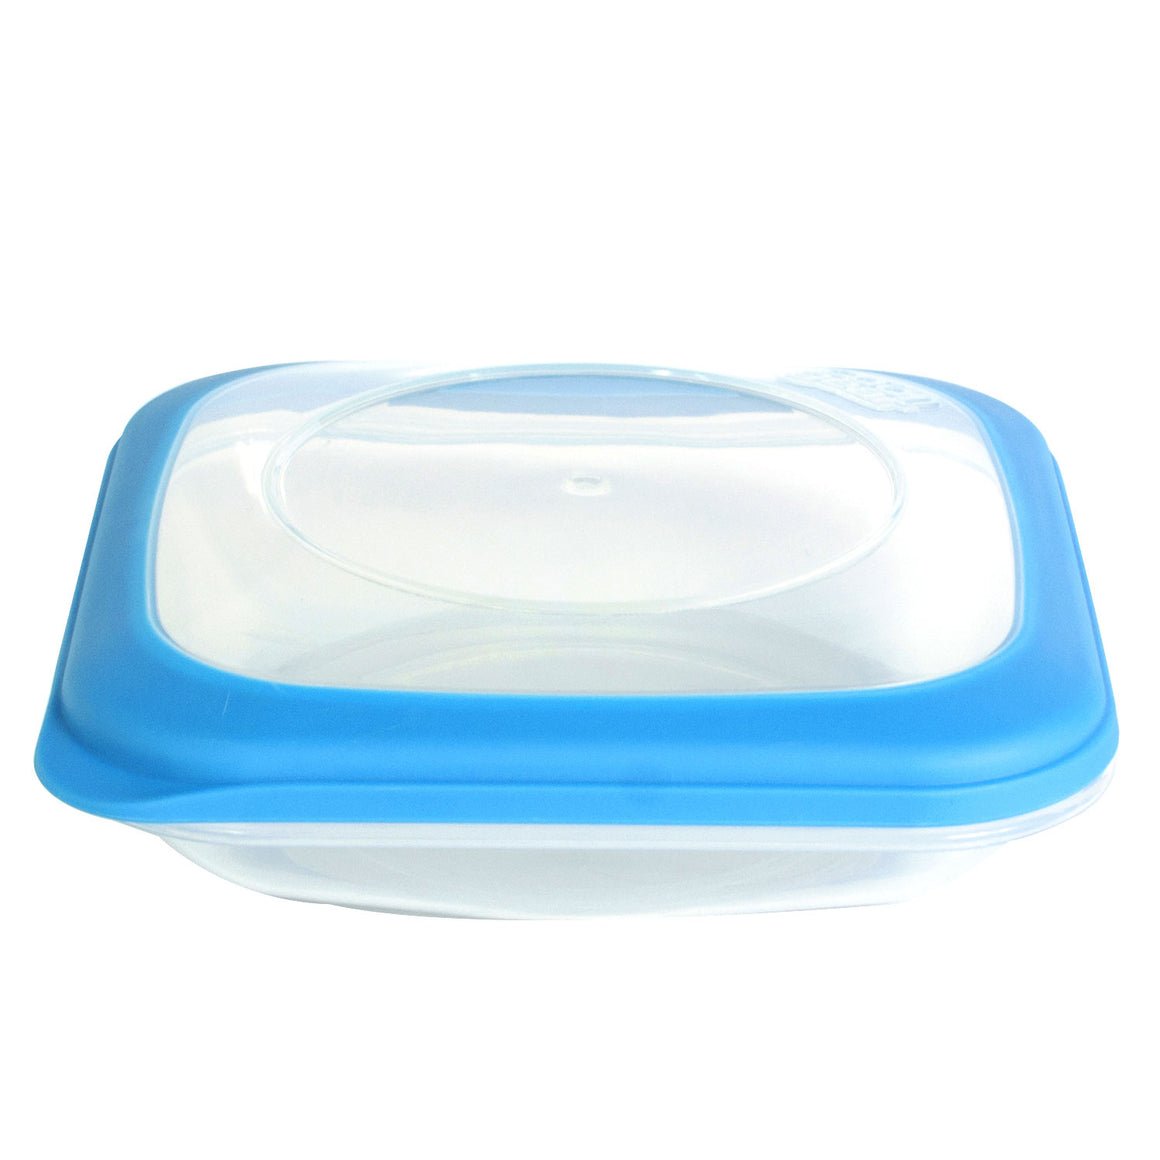 Blue 22 Oz Sandwich Container at Cool Gear Food Containers